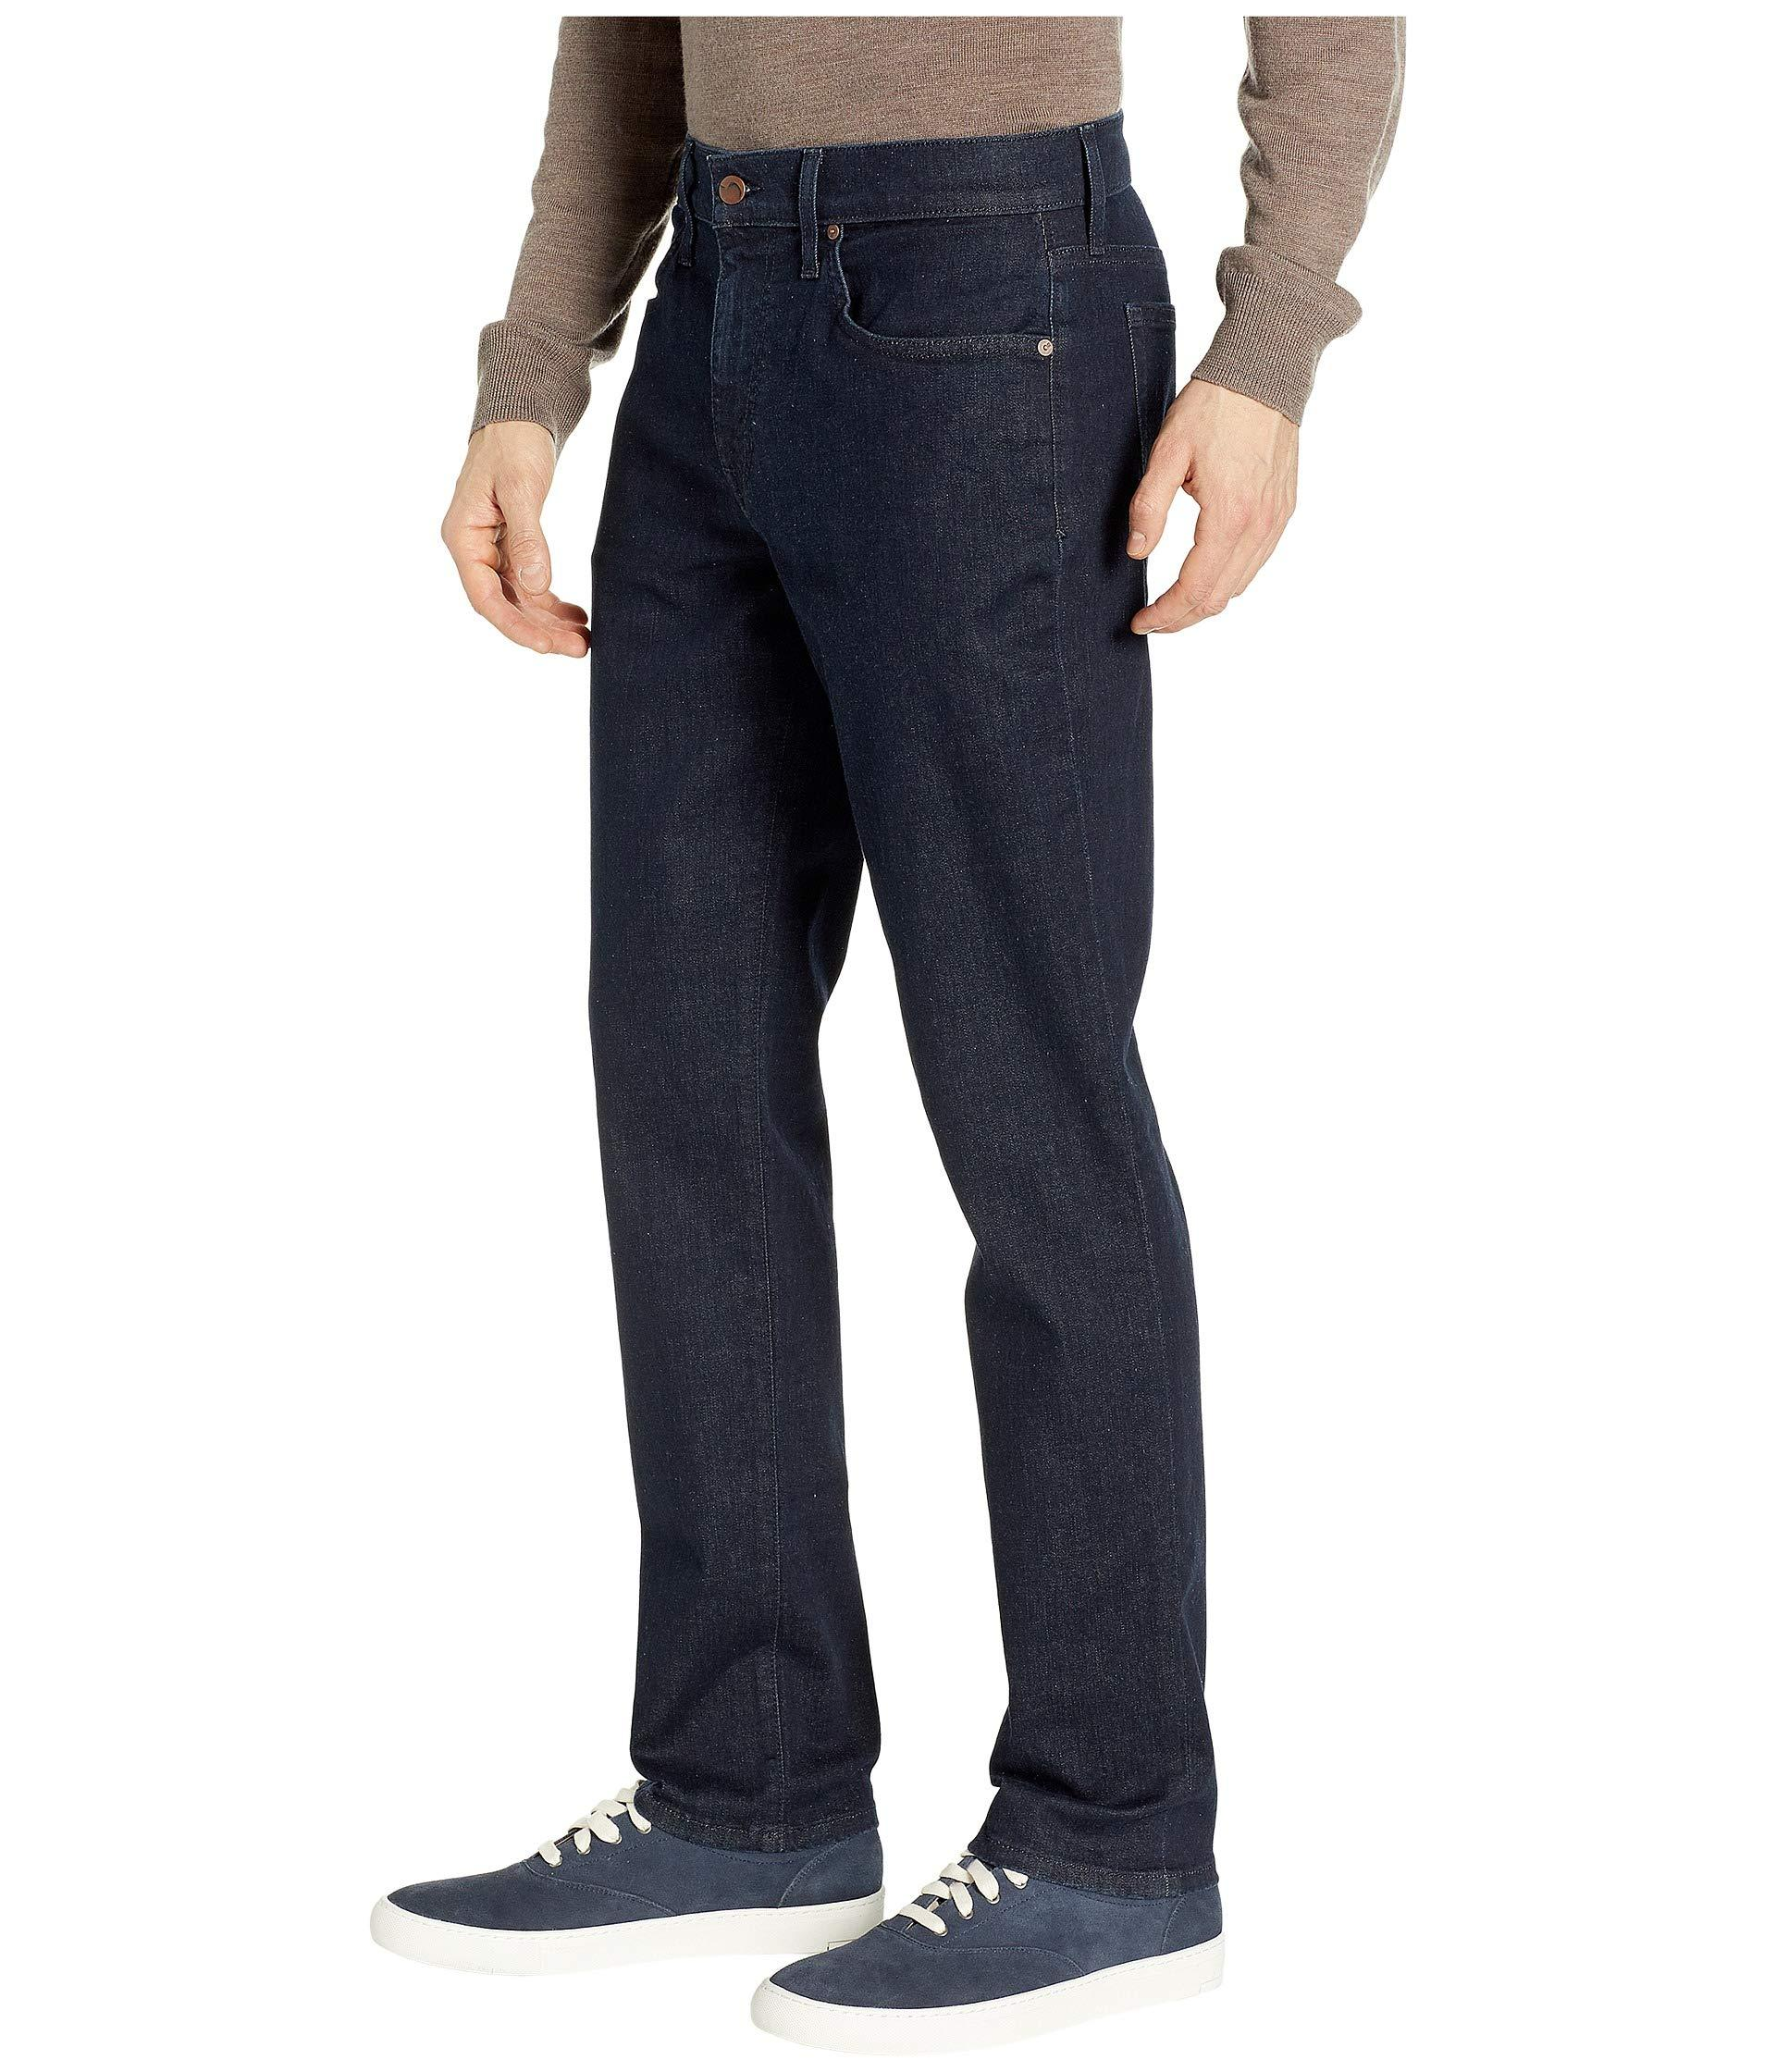 Lyst - Joe s Jeans Brixton Straight And Narrow In Dizzy (dizzy) Men s Jeans  in Blue for Men 5ea5eeeb347